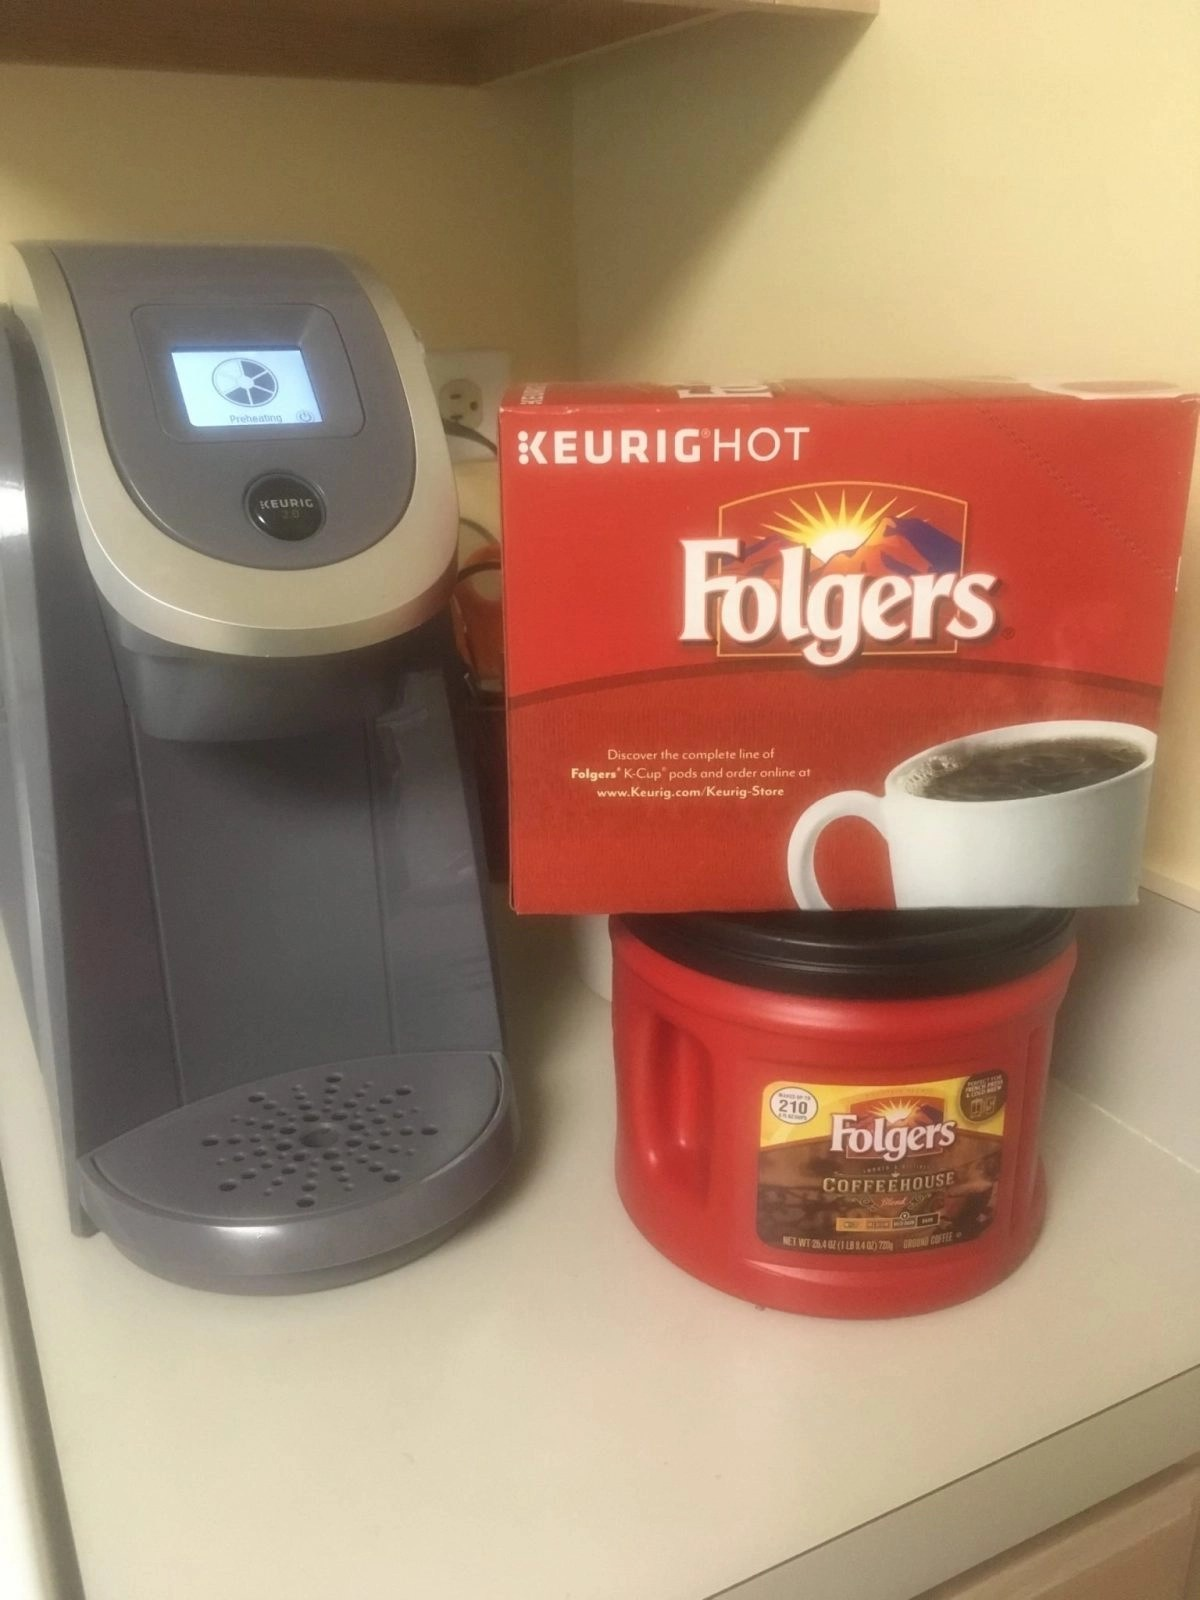 Folgers Coffee next to Keurig